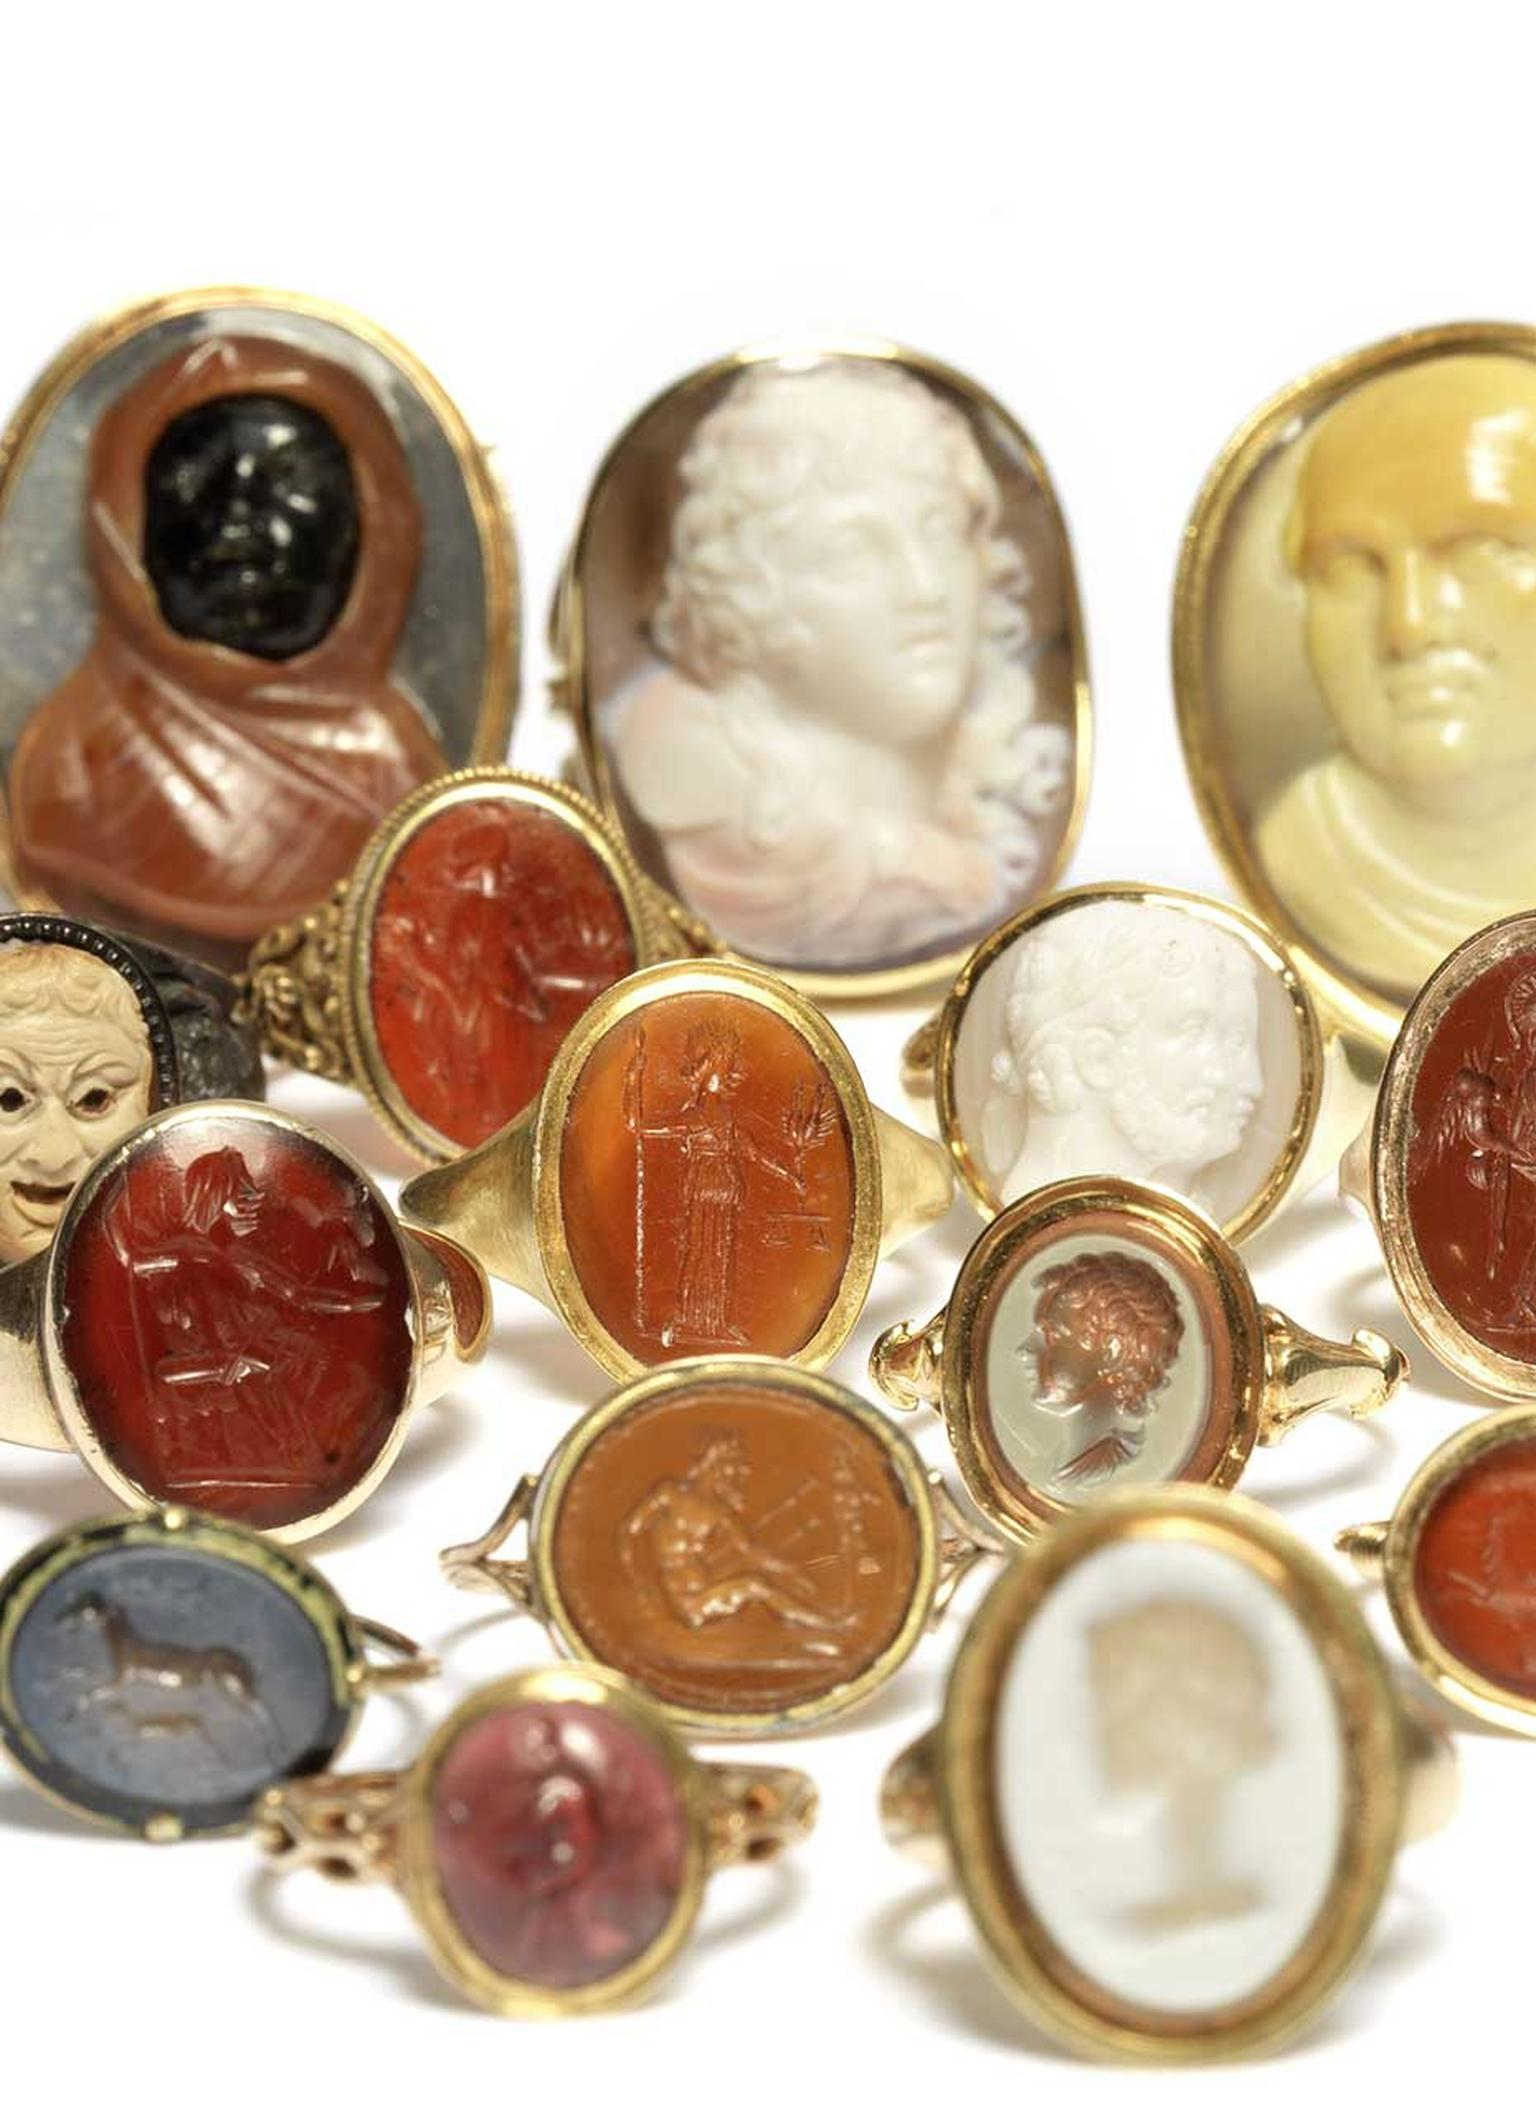 The Ceres Collection of 101 engraved cameo and intaglio rings that date back from as early as the 4th Century BC will be auctioned by Bonhams London this September.